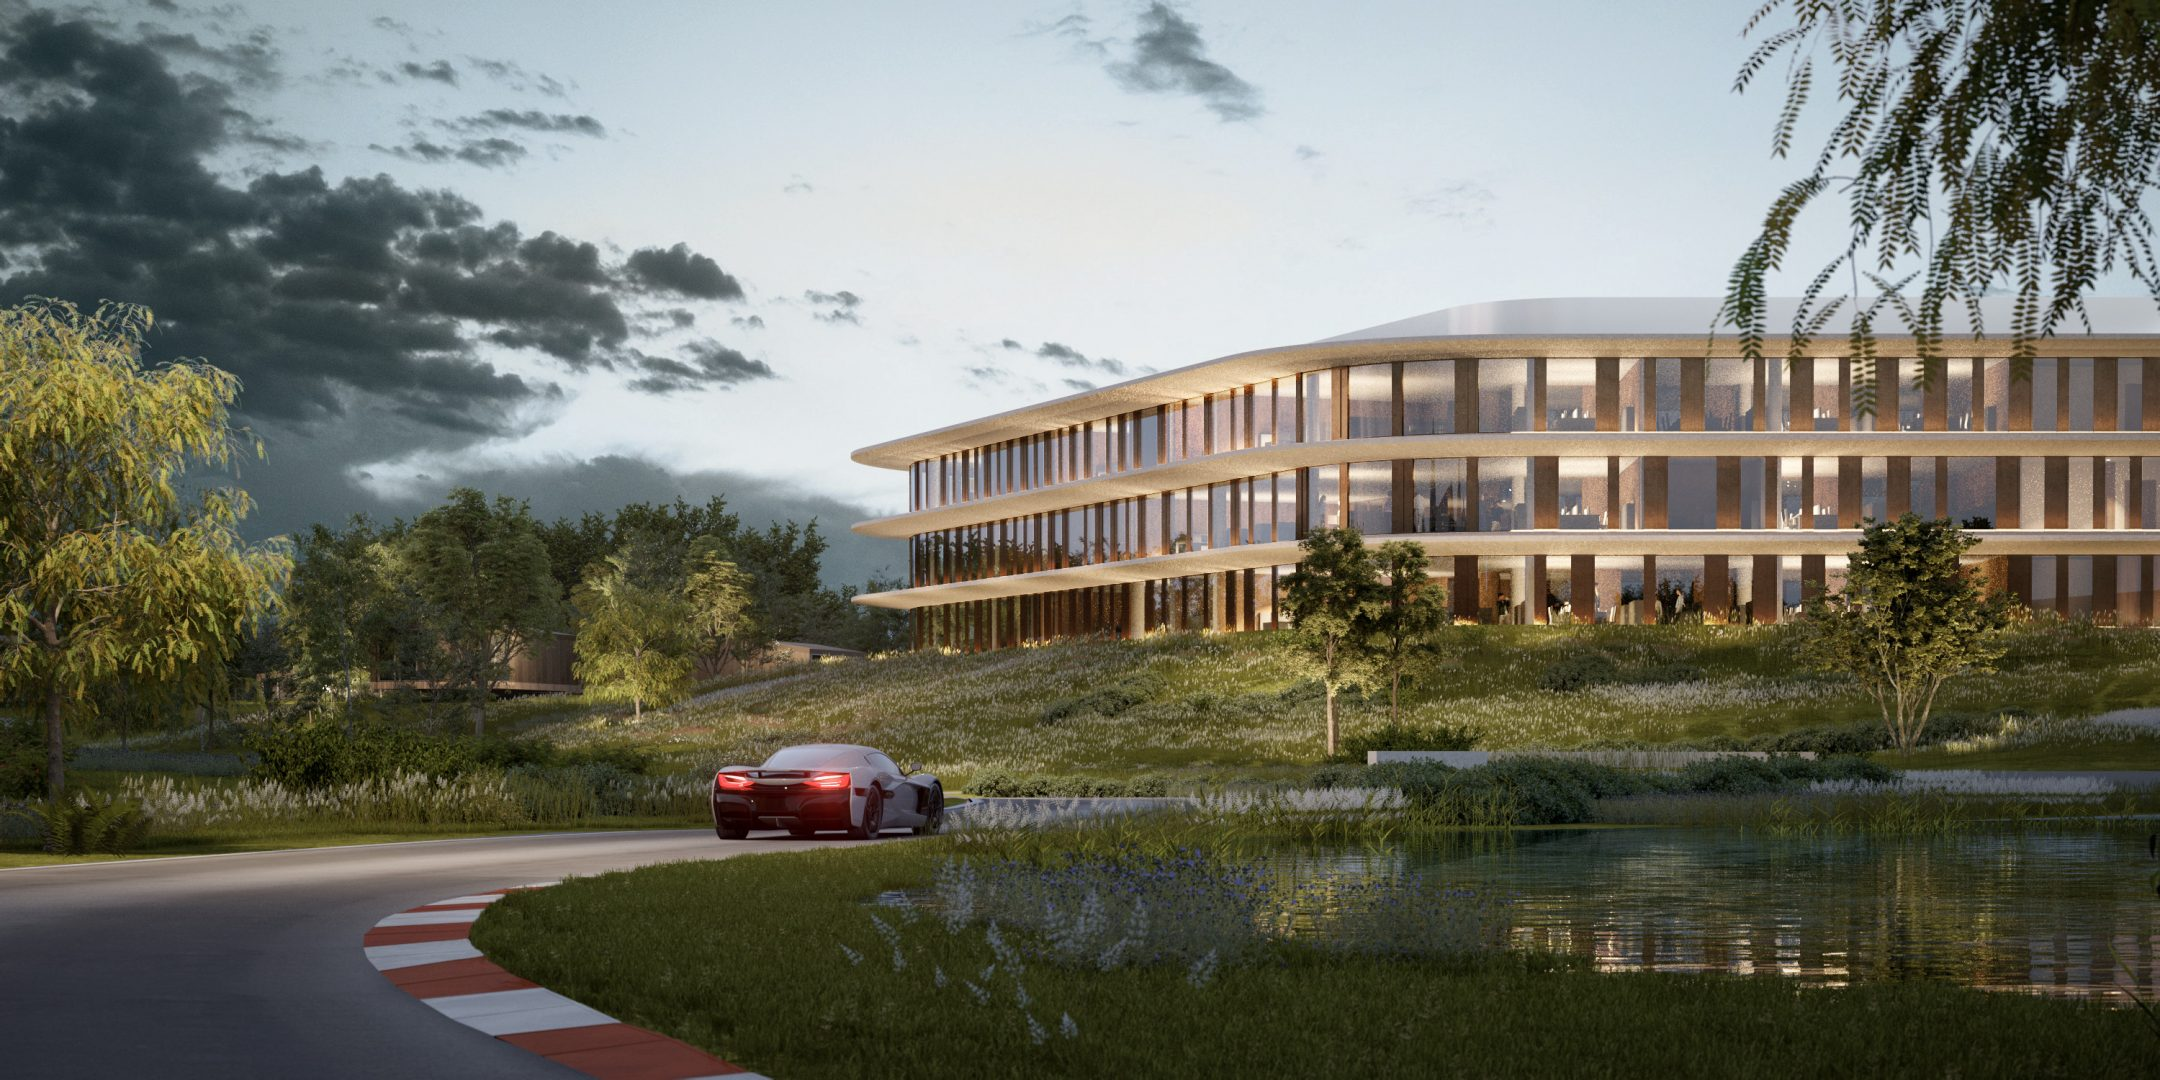 Rimac presents €200 million state-of-the-art Zagreb campus design